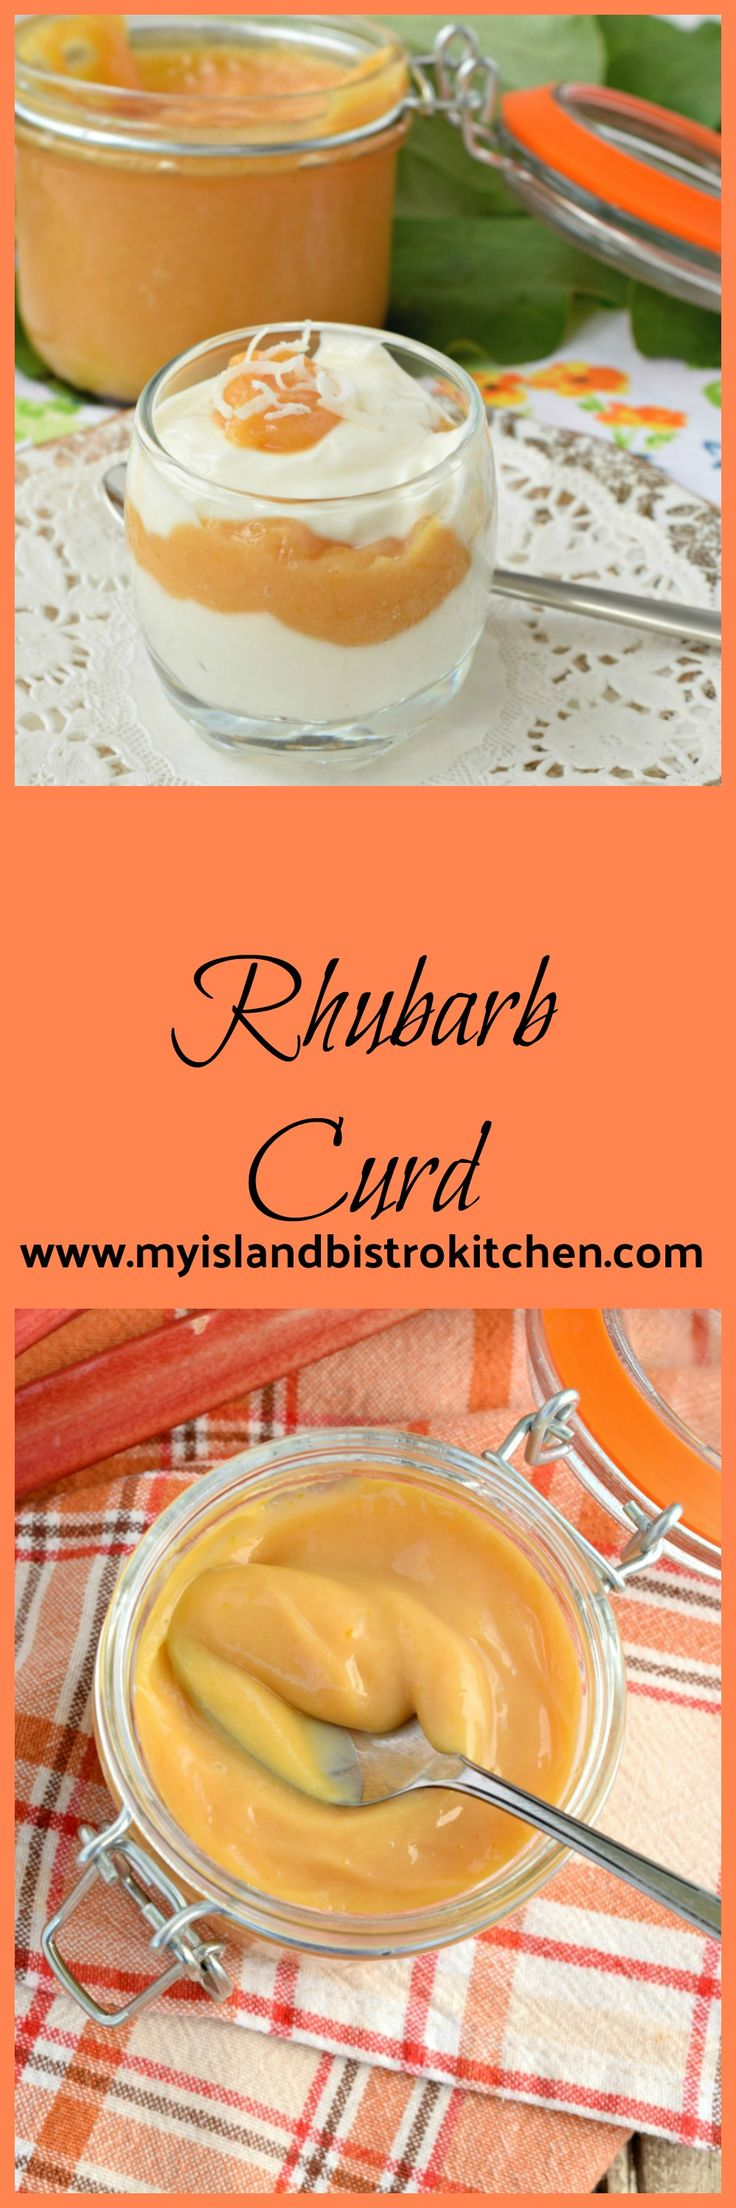 A delightfully creamy rhubarb curd that is a perfect spread on muffins, scones, or biscuits or added to a yogurt parfait.